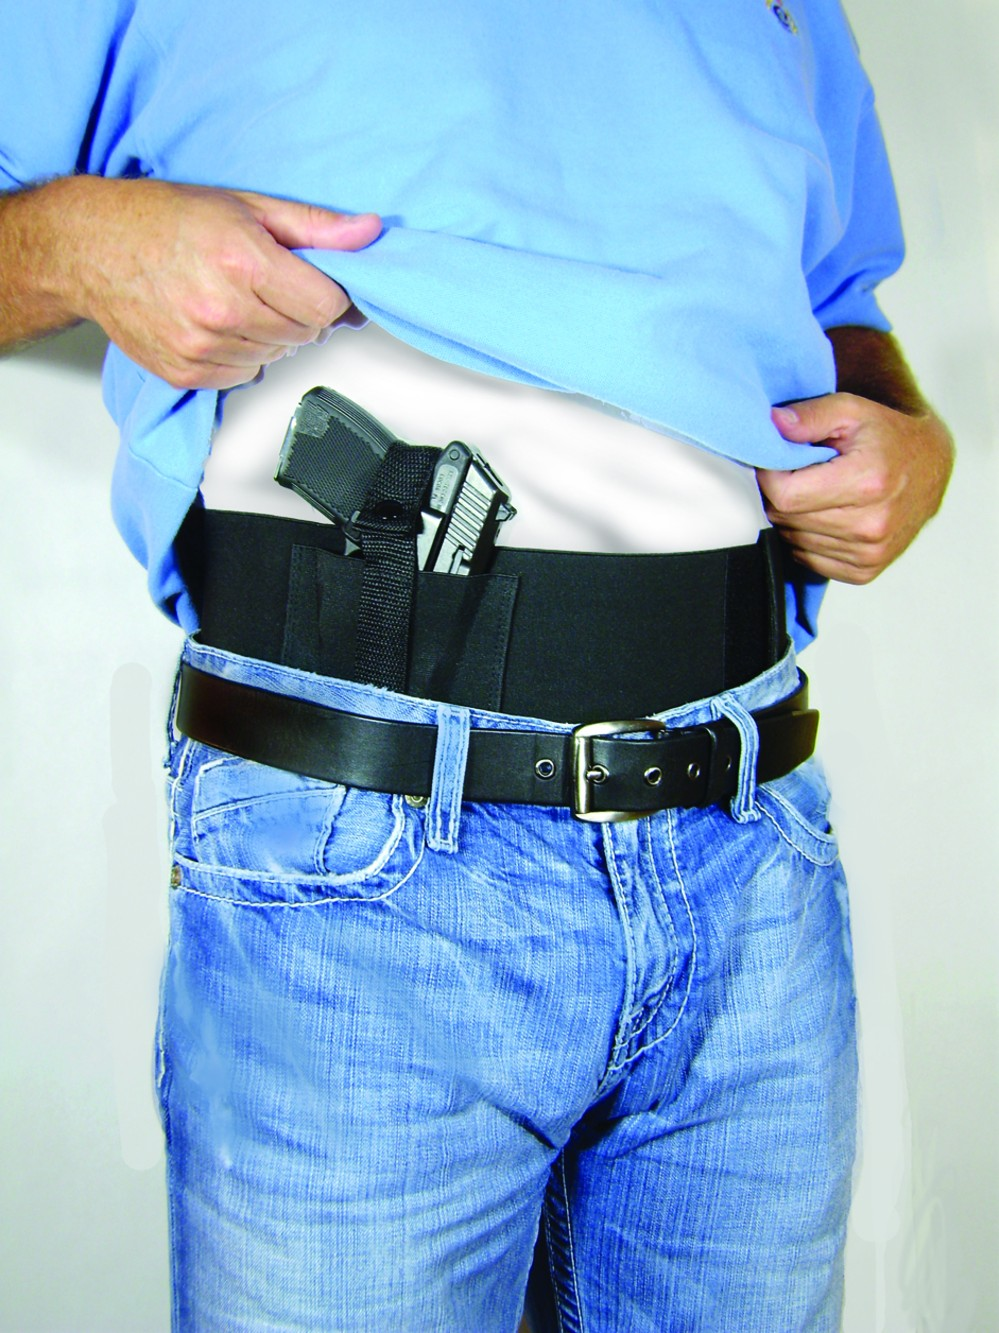 PS Products Concealed Carry Belly Waist Band Handgun Carrying System